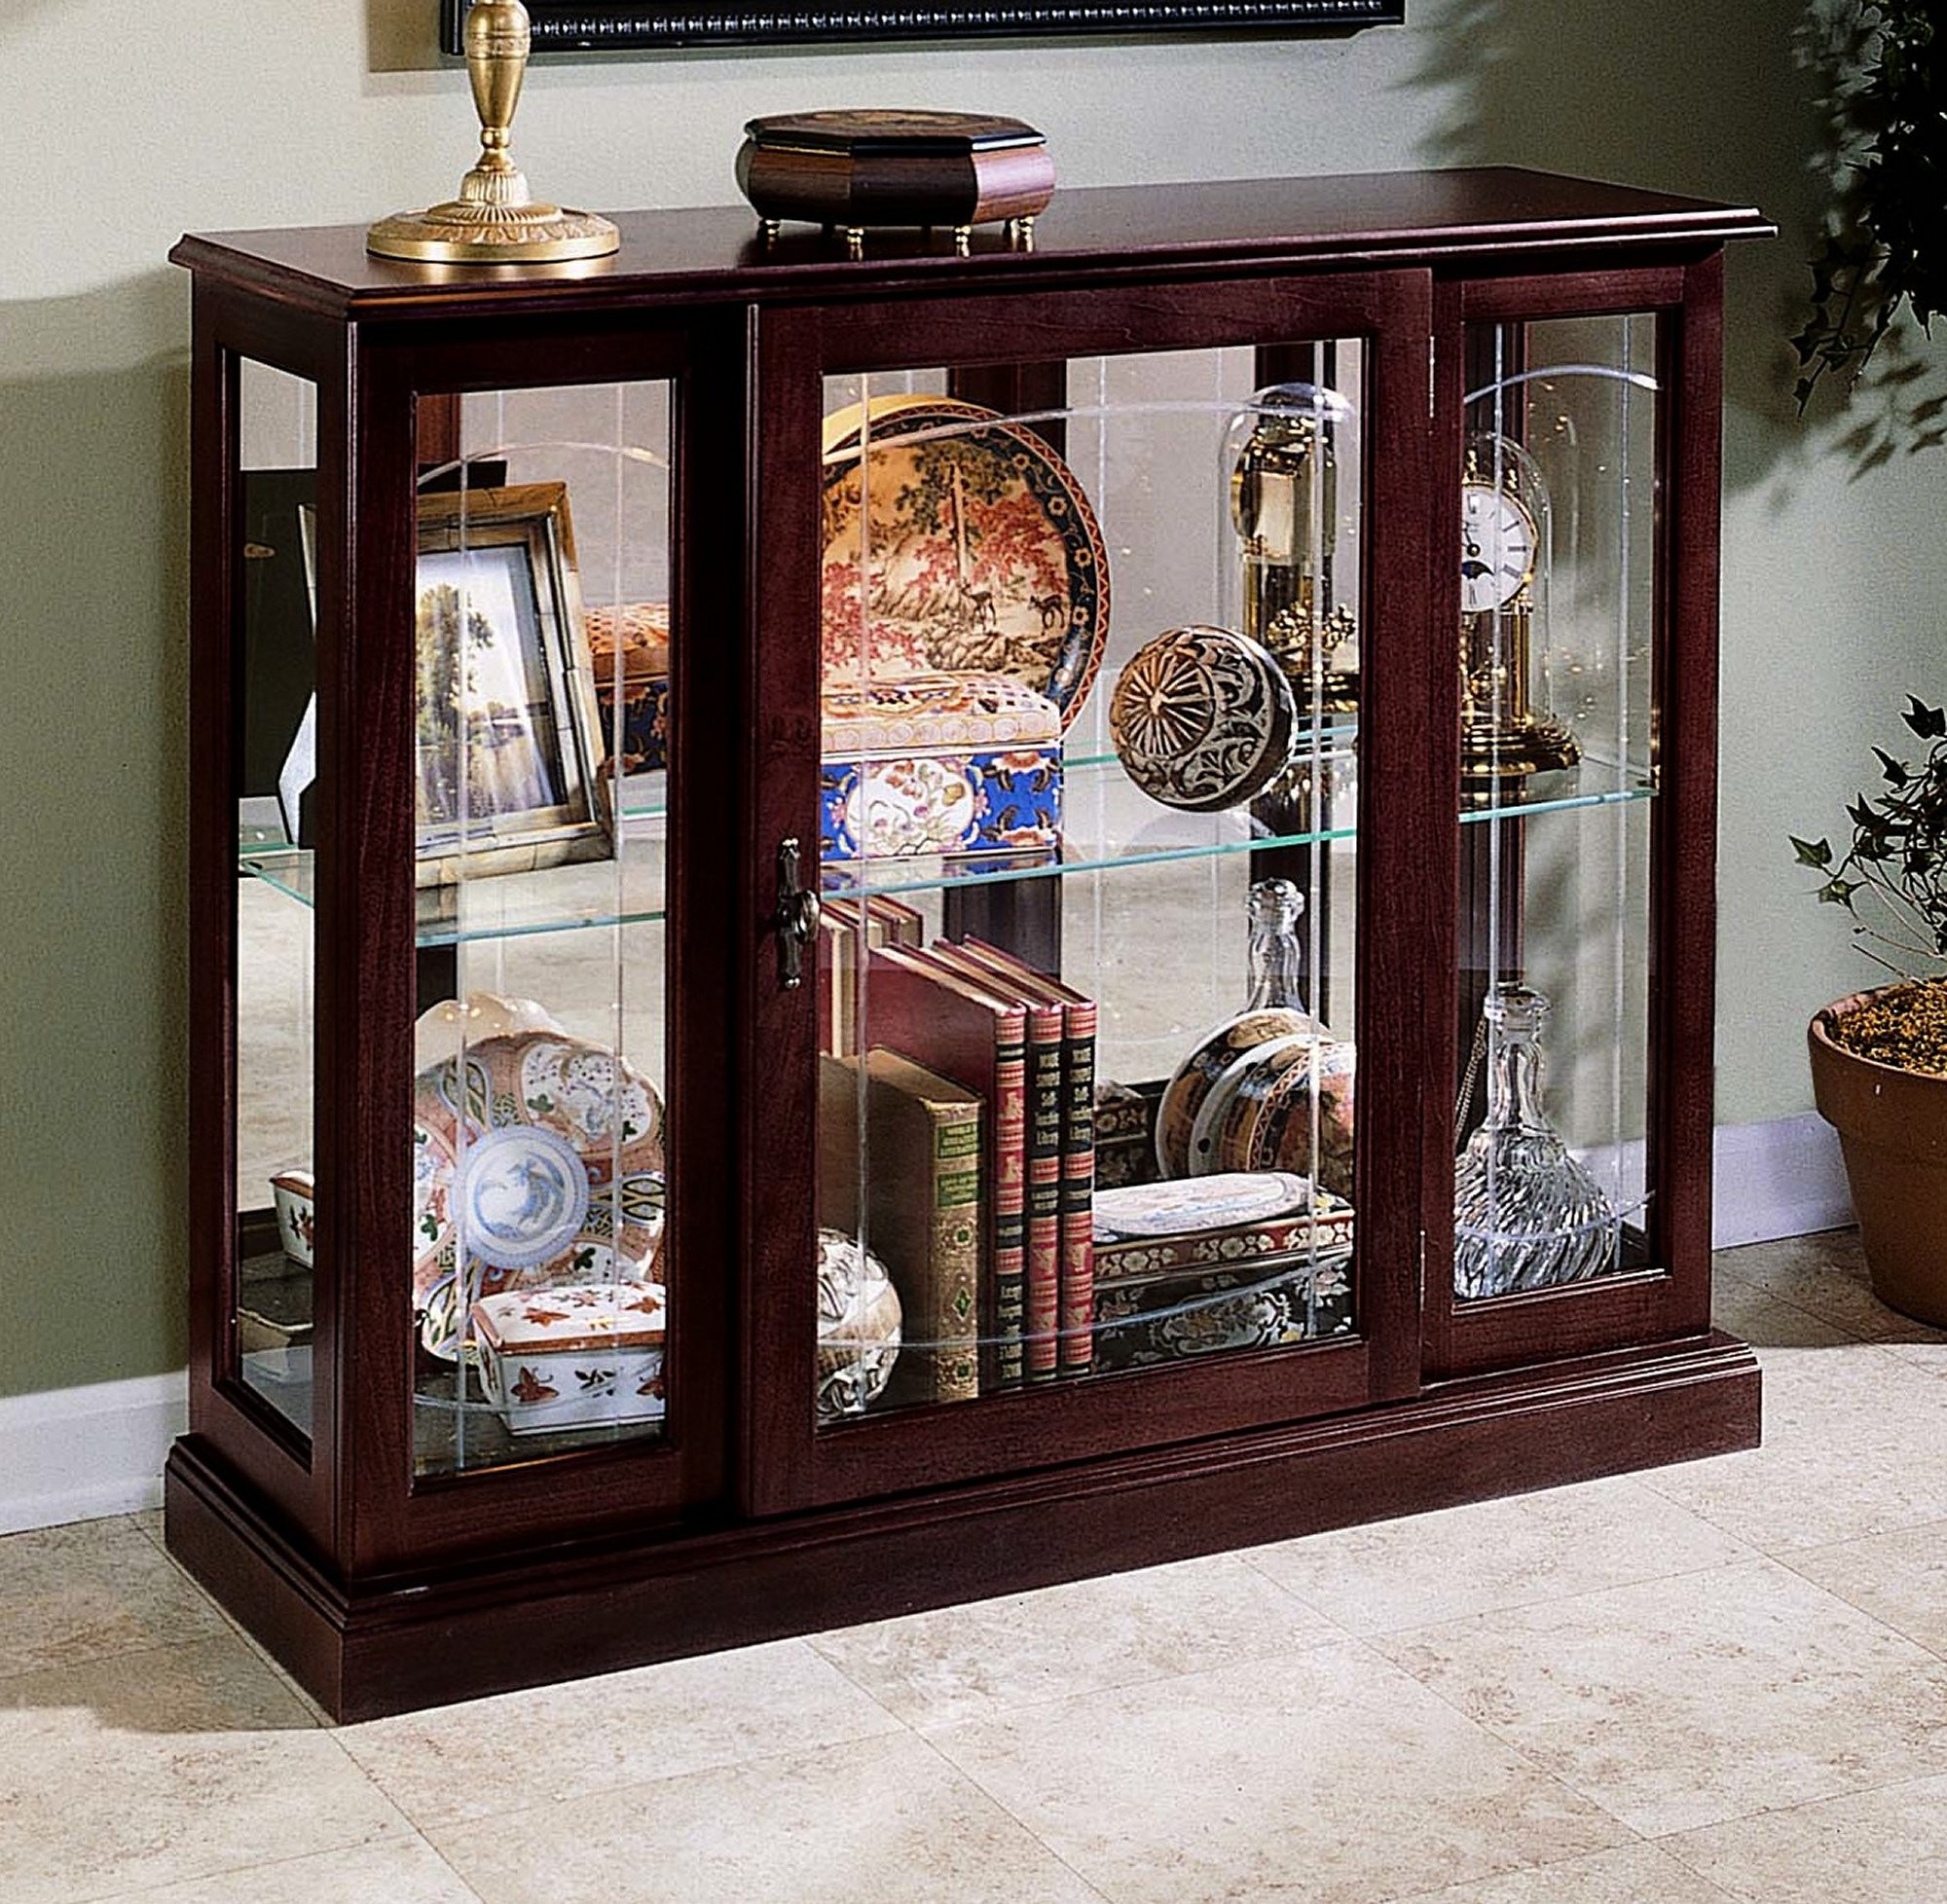 Incroyable Solid Hardwood Console Curio Cabinet